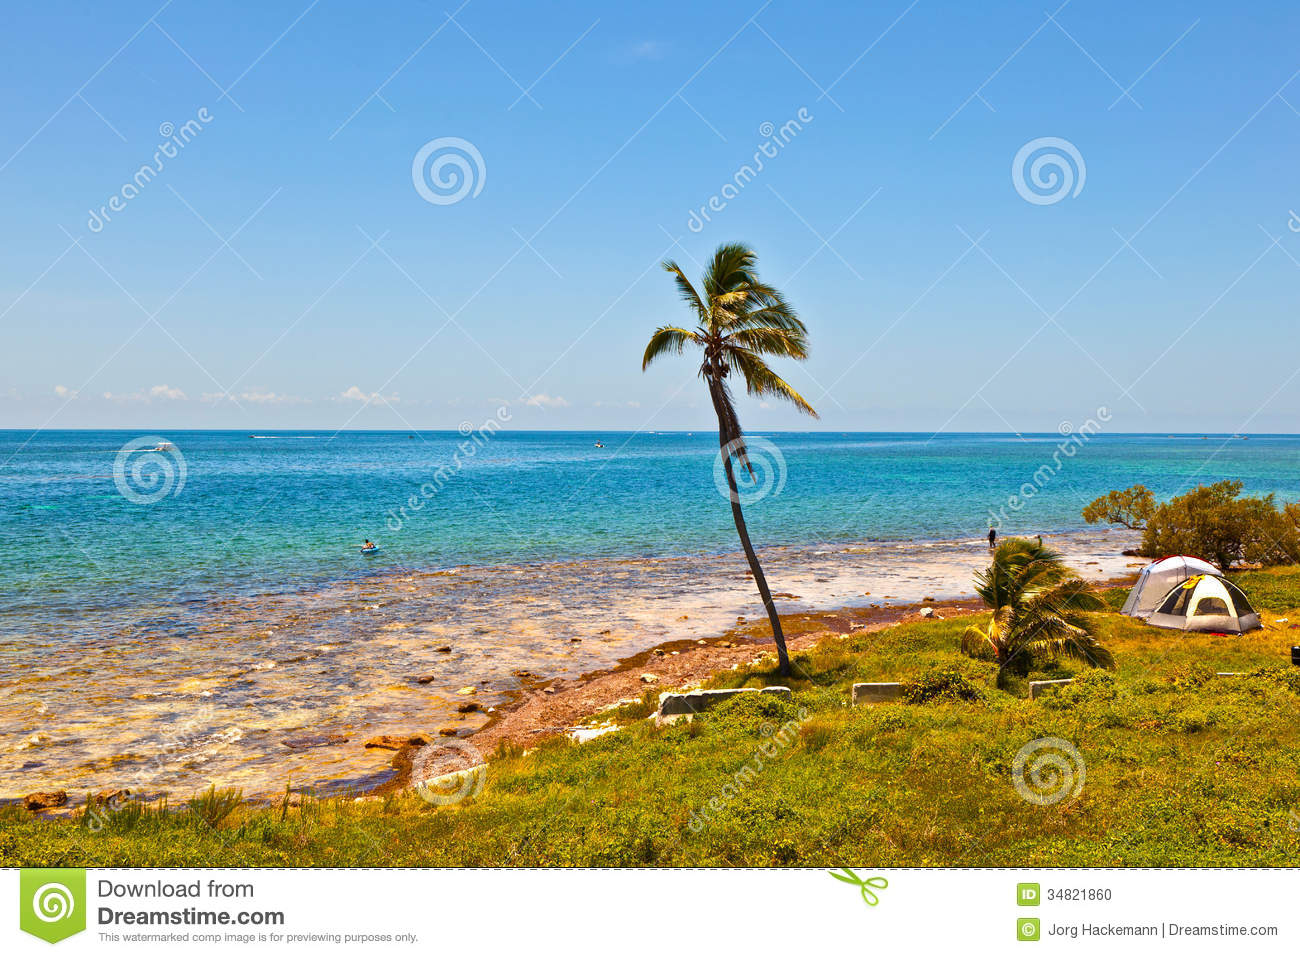 Florida Keys Map Of Beaches.Tropical Beach With Clear Water In The Florida Keys Stock Photo